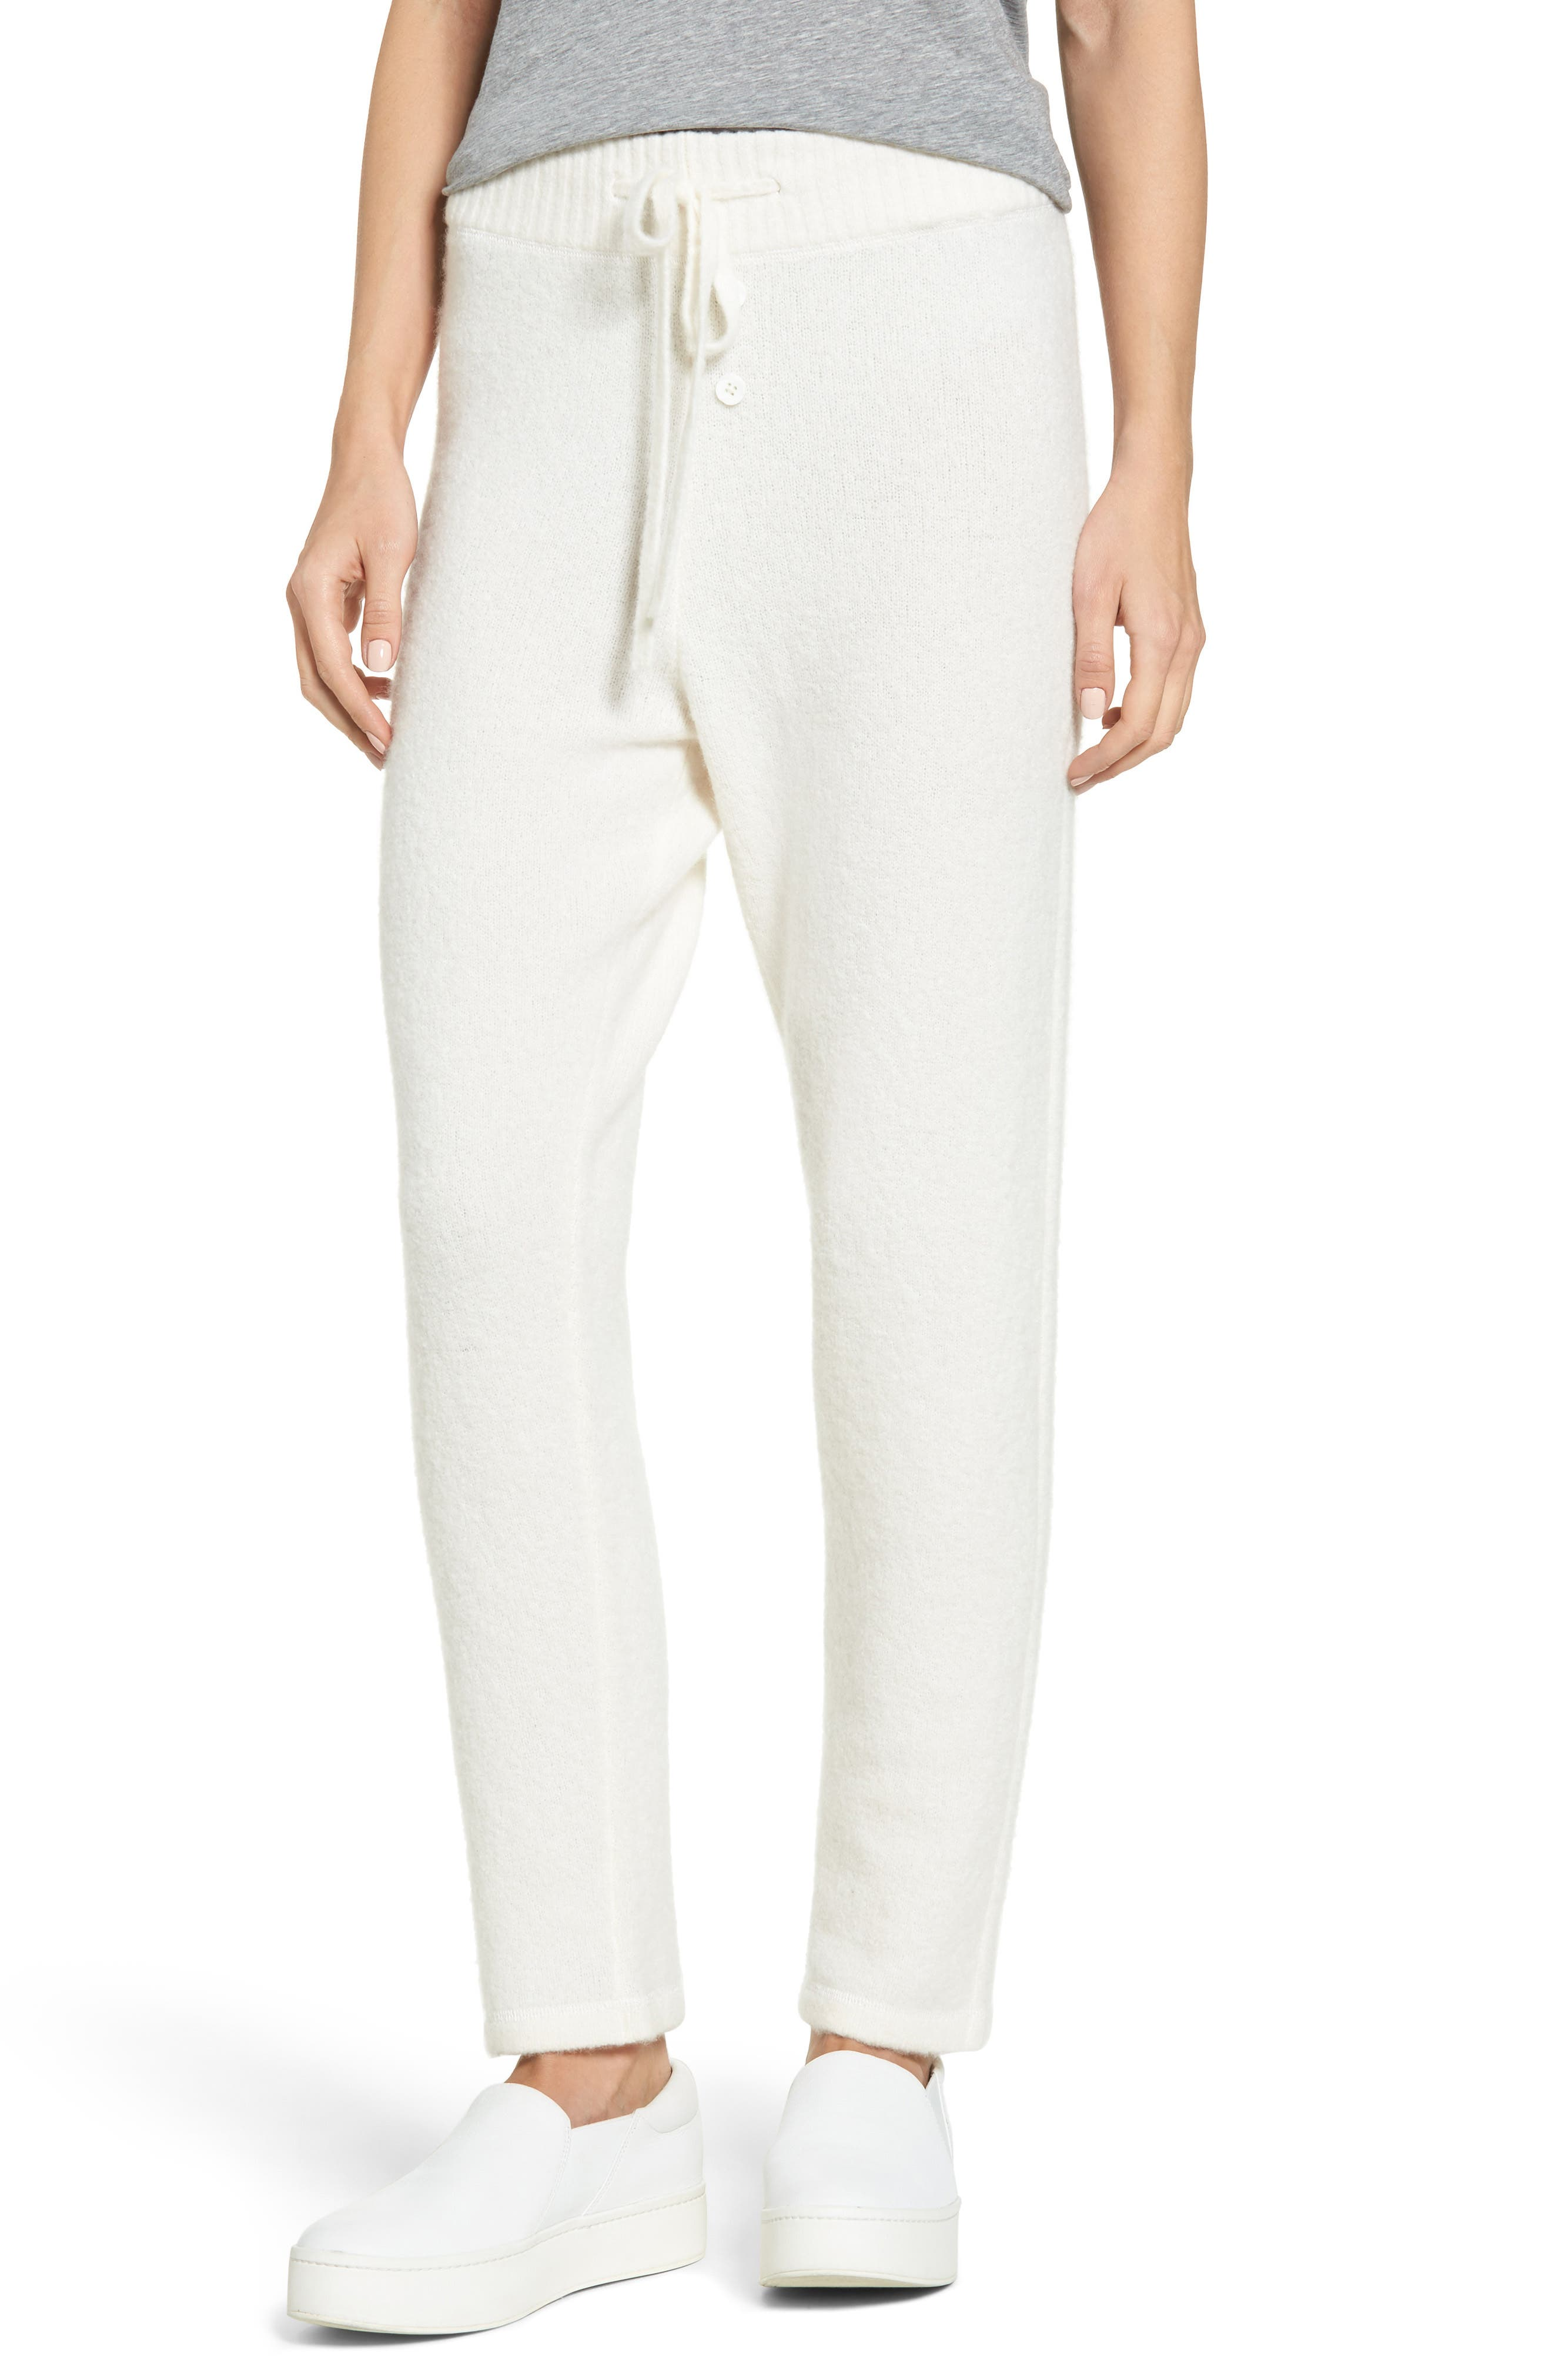 Alternate Image 1 Selected - James Perse Brushed Cashmere Sweatpants